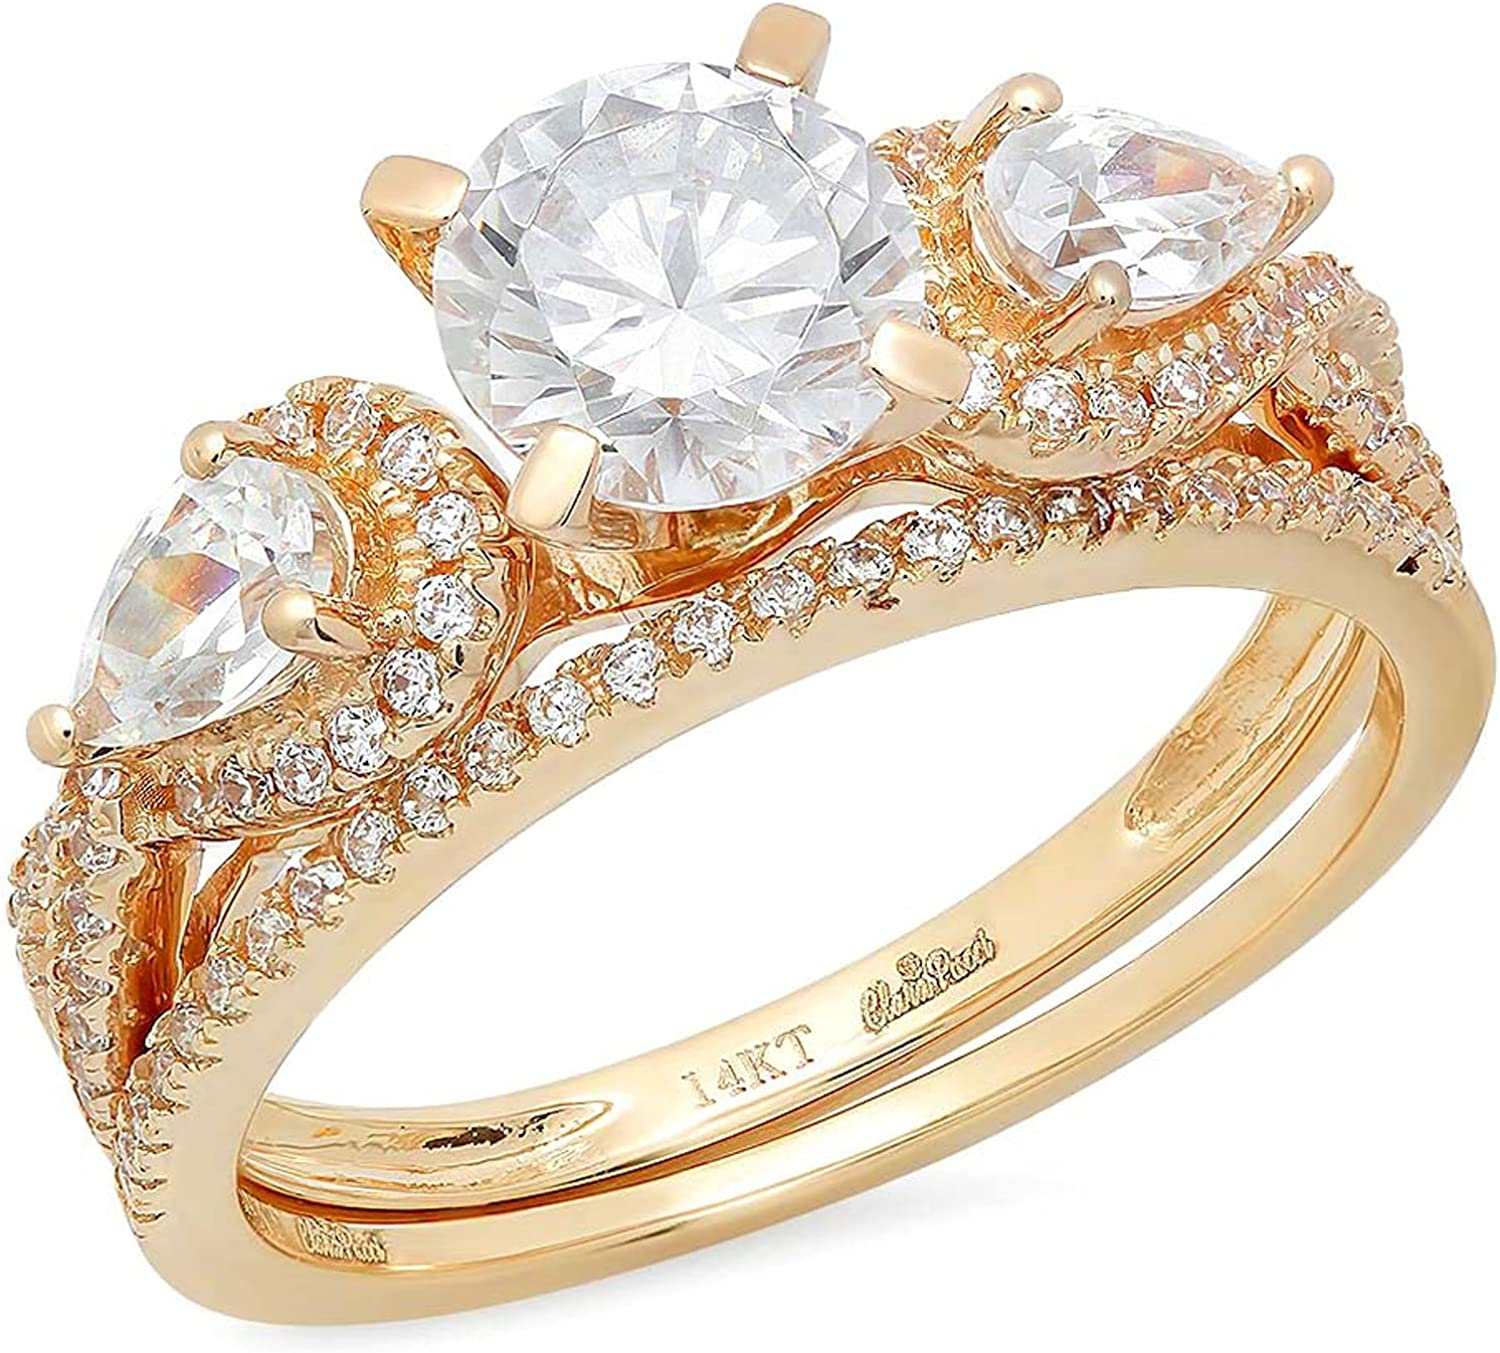 2.0ct Round Pear Cut Solitaire 3 stone With Accent Genuine Moissanite & Simulated Diamond Engagement Promise Statement Anniversary Bridal Wedding Ring Solid 14k Yellow Gold